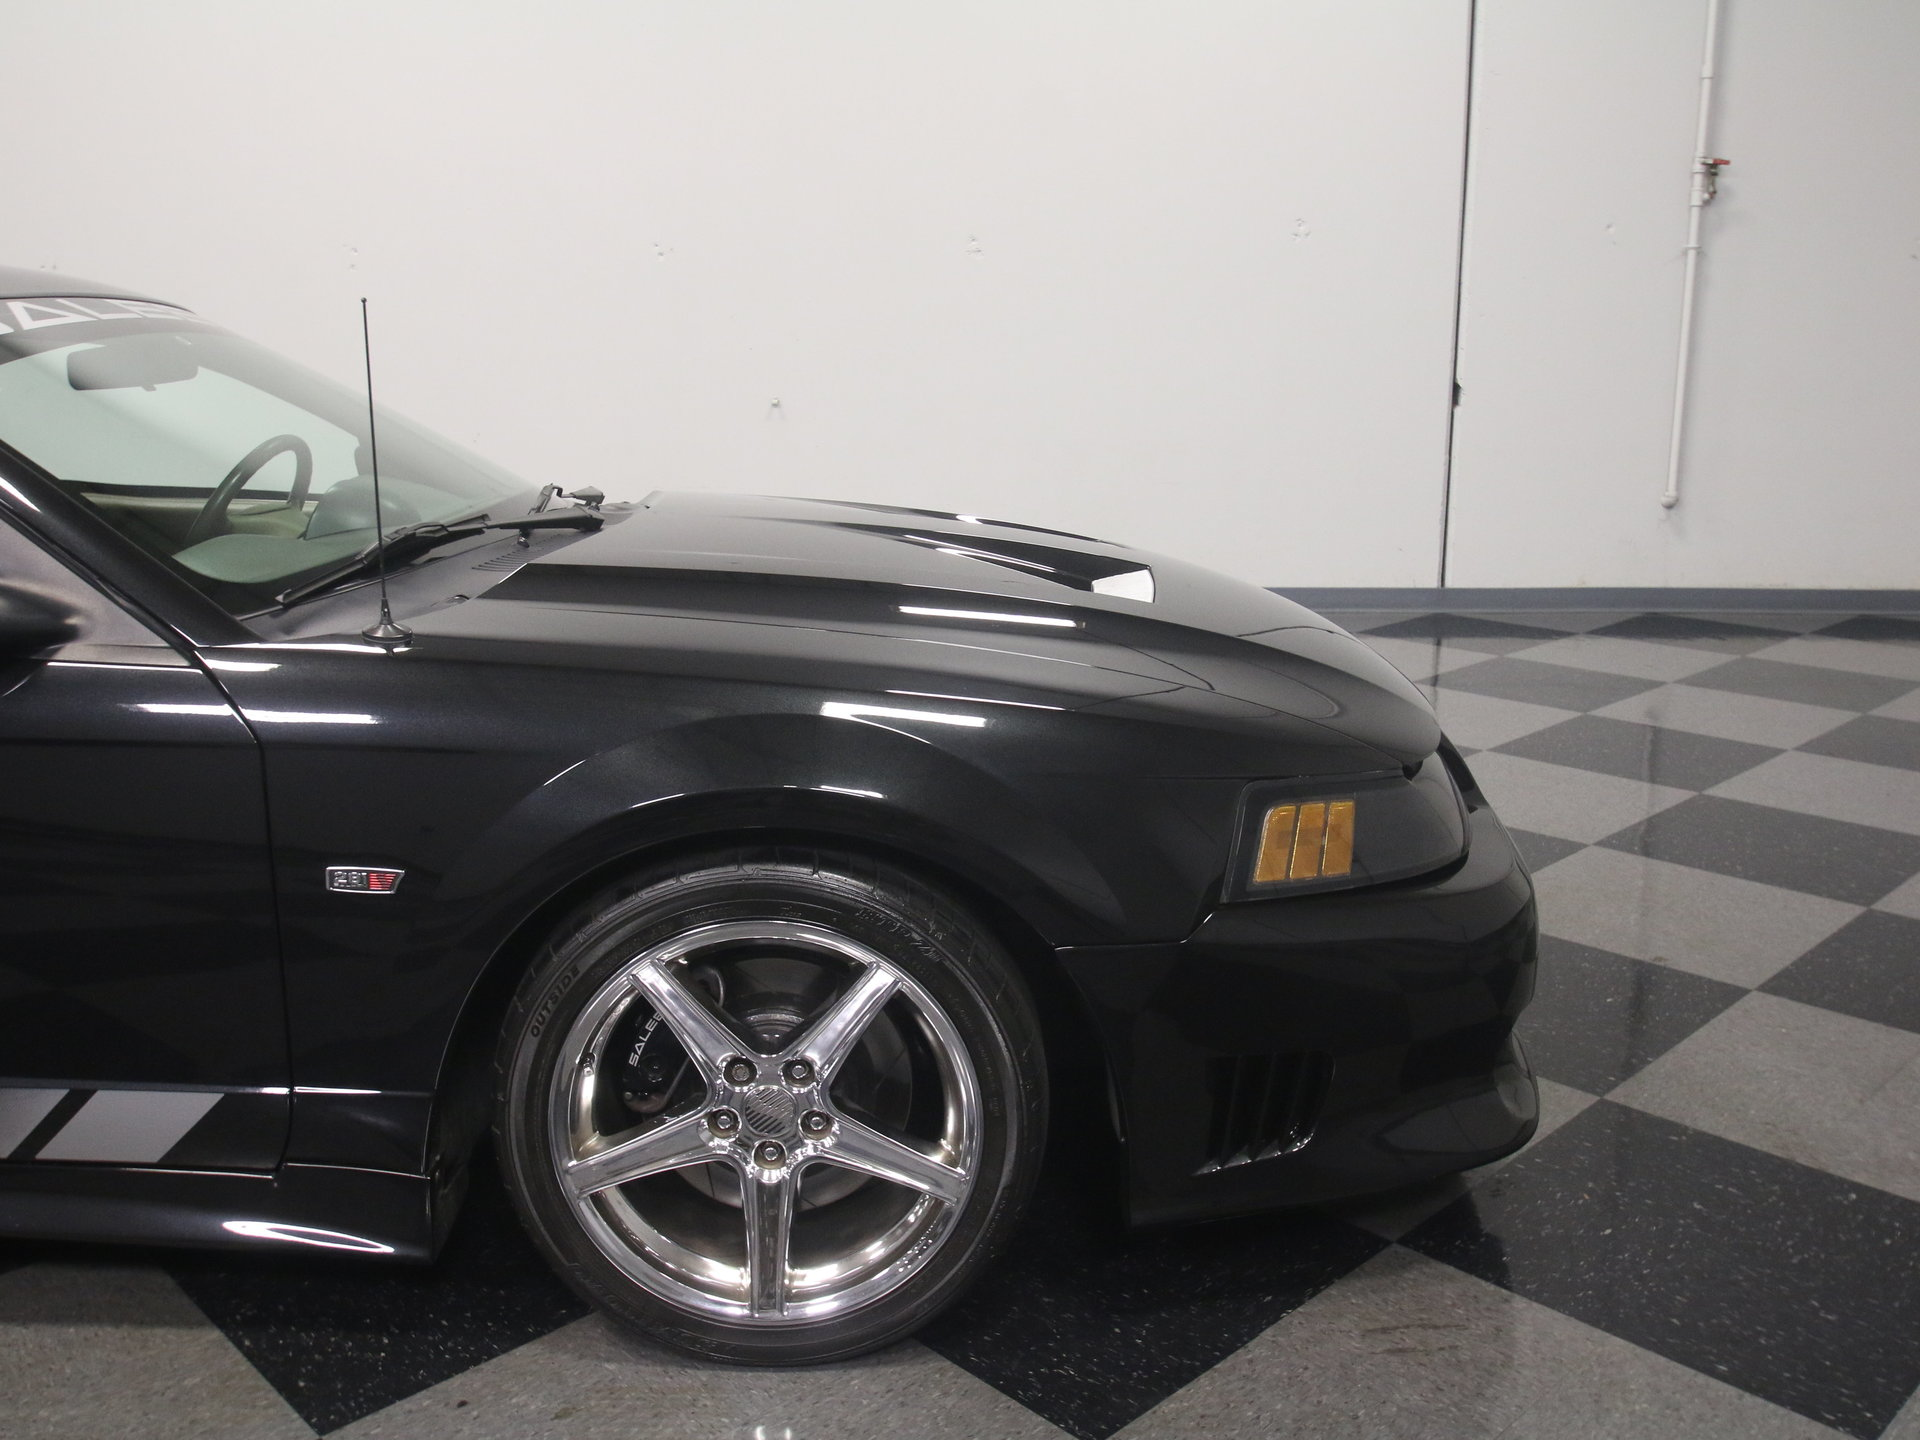 2000 Ford Mustang Saleen: SLICK SALEEN W/UPGRADES, 4.6L V8, WHIPPLE SUPERCHARGER, 5-SPEED, X-PIPE, FAST!!